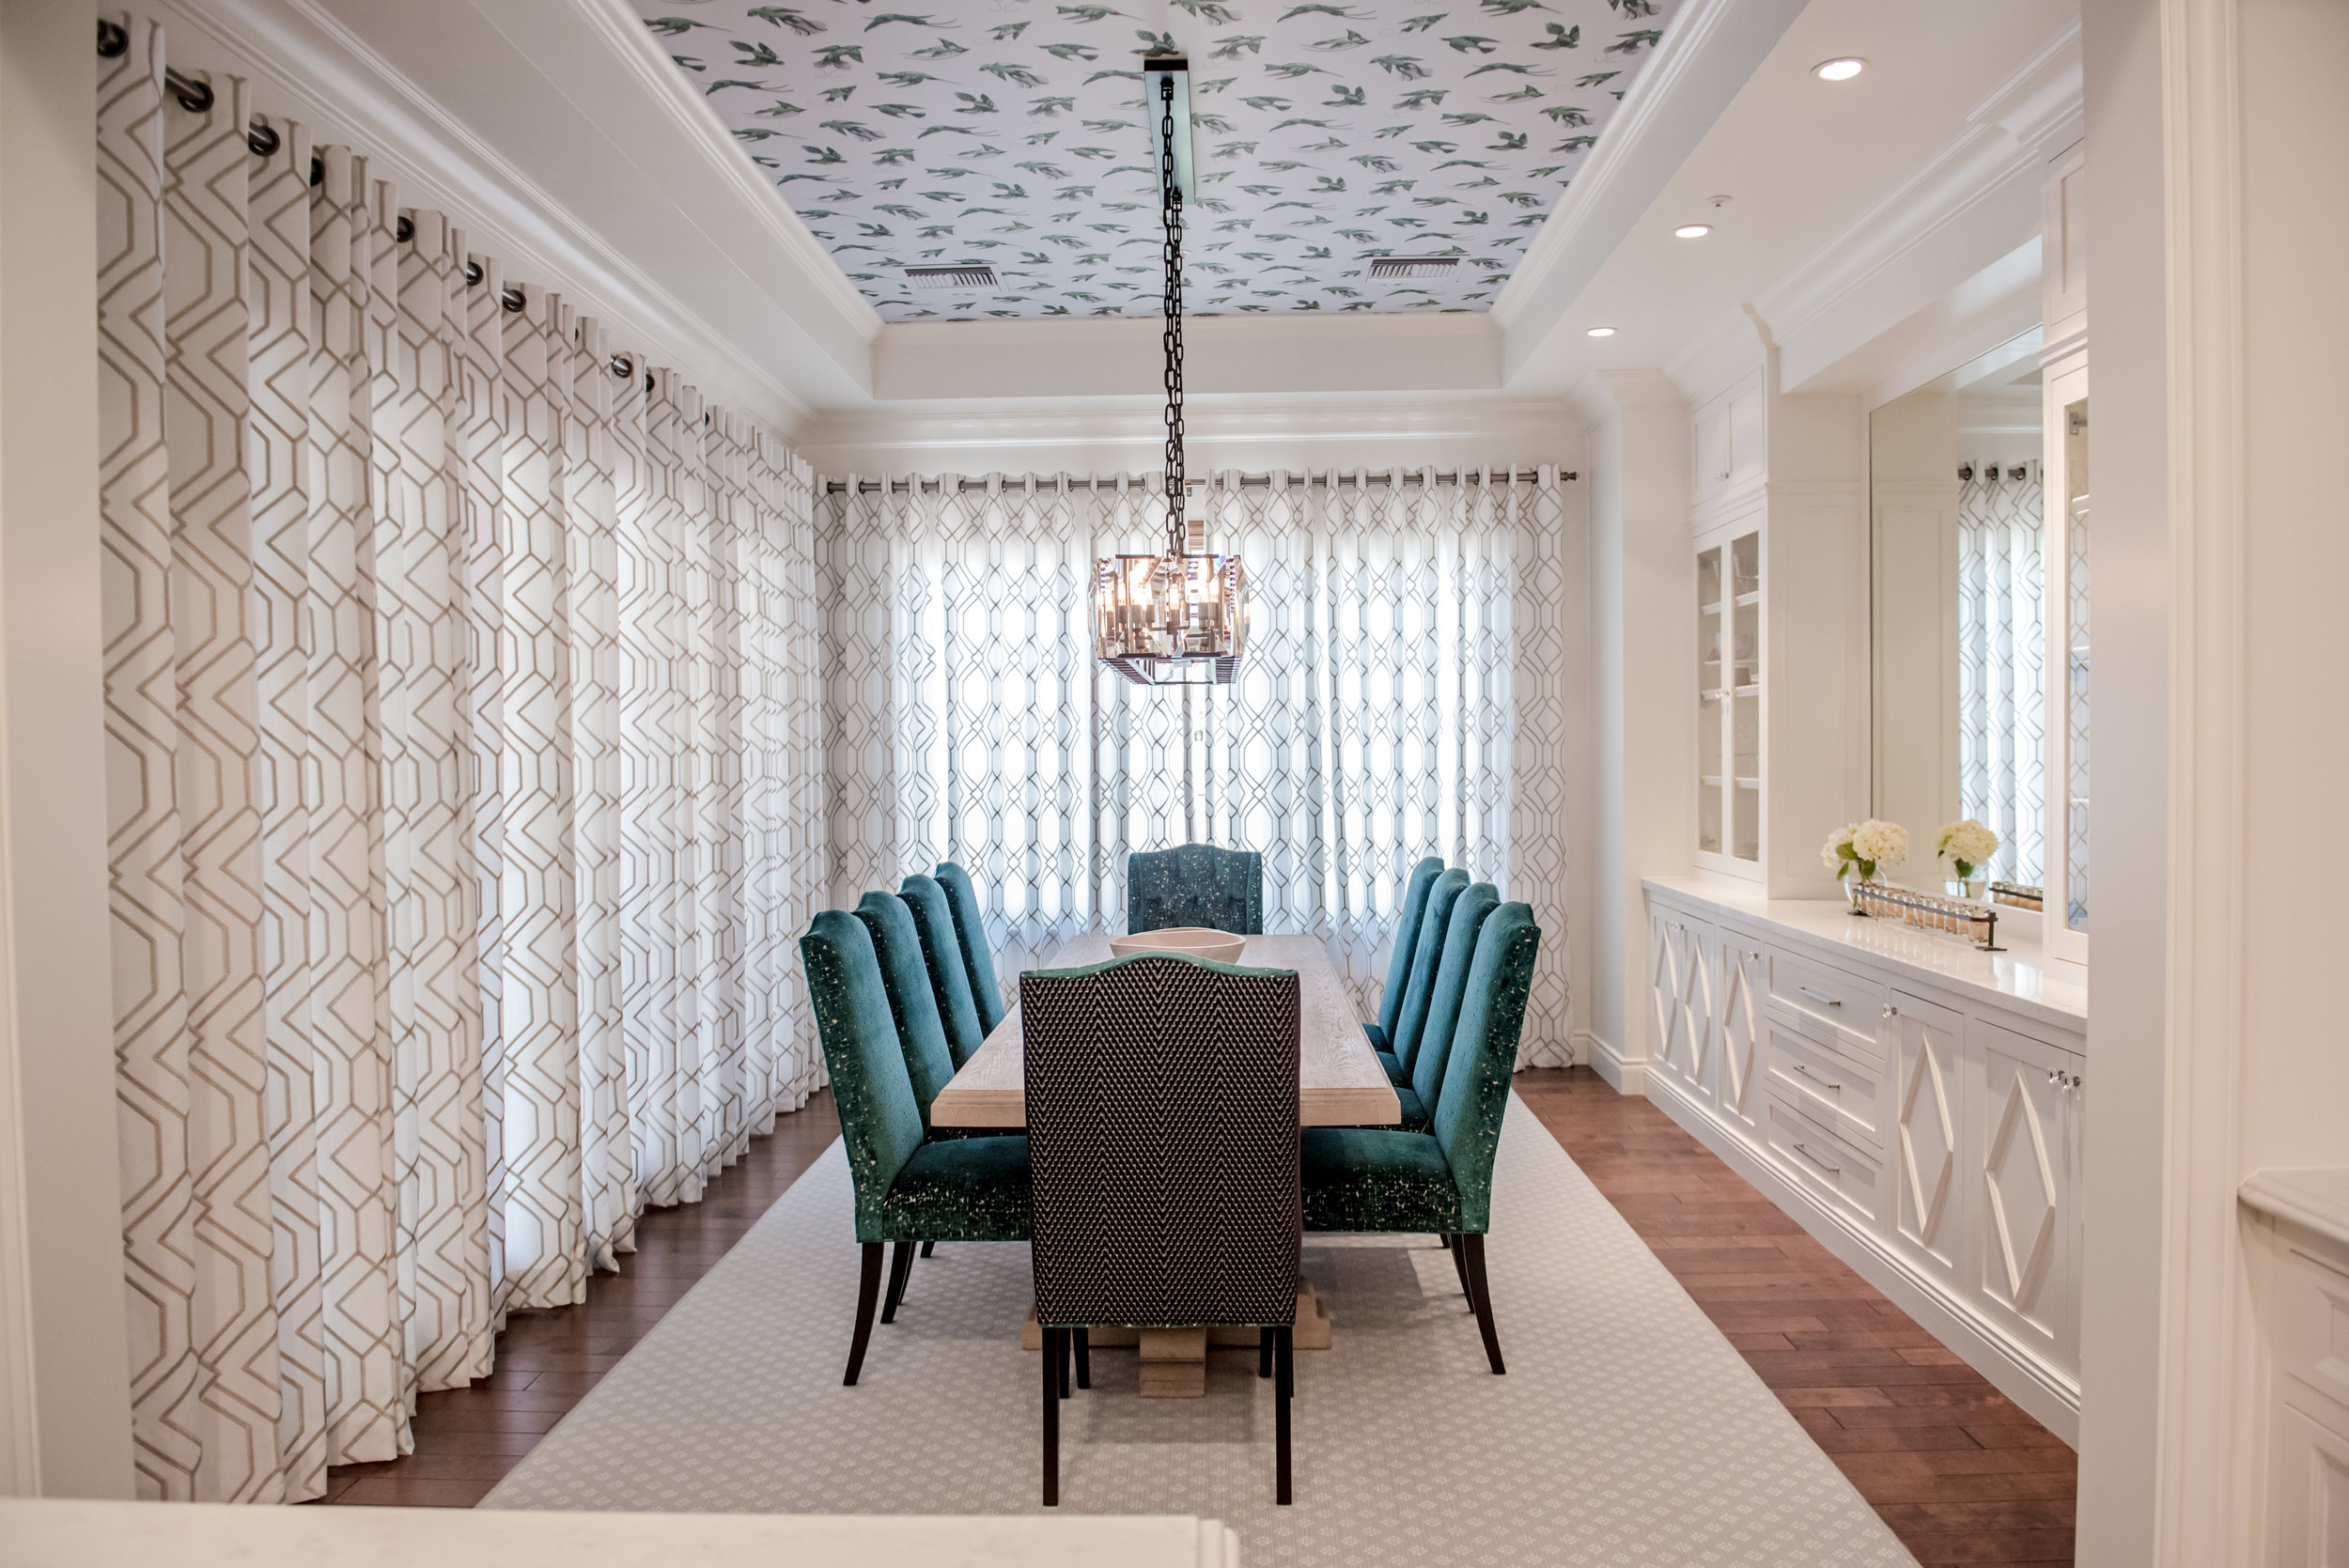 10+Dining+Transitional+Eclectic+Wallpaper+Ceiling+CustomChairs+Drapery+CrystalChandelier+Builtins.jpg